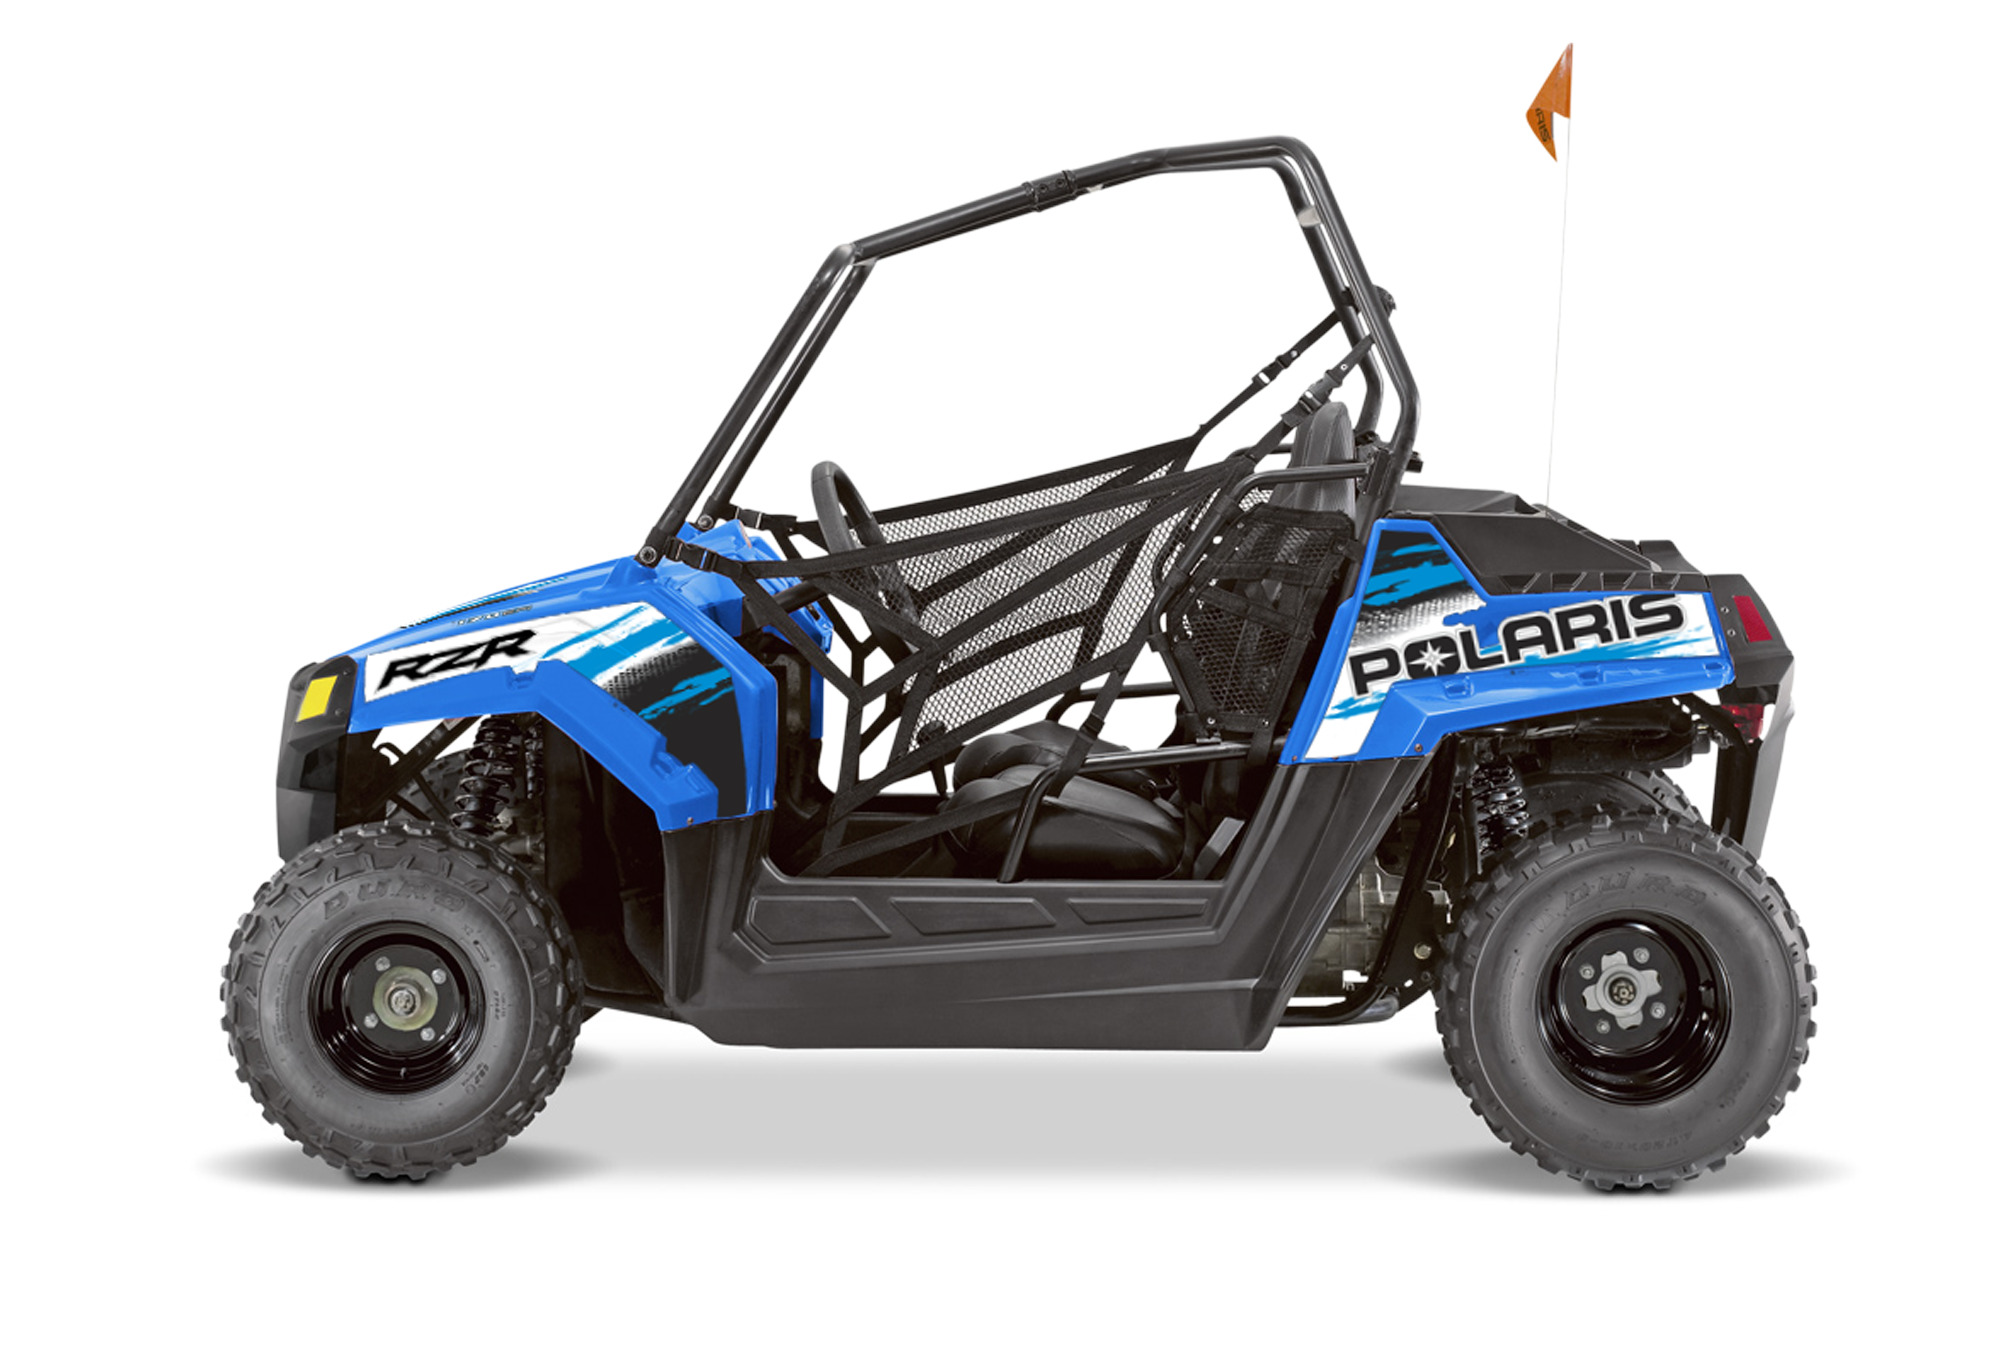 hight resolution of polaris recalls rzr 170 recreational off highway vehicles due to 2014 polaris rzr 170 wiring diagram